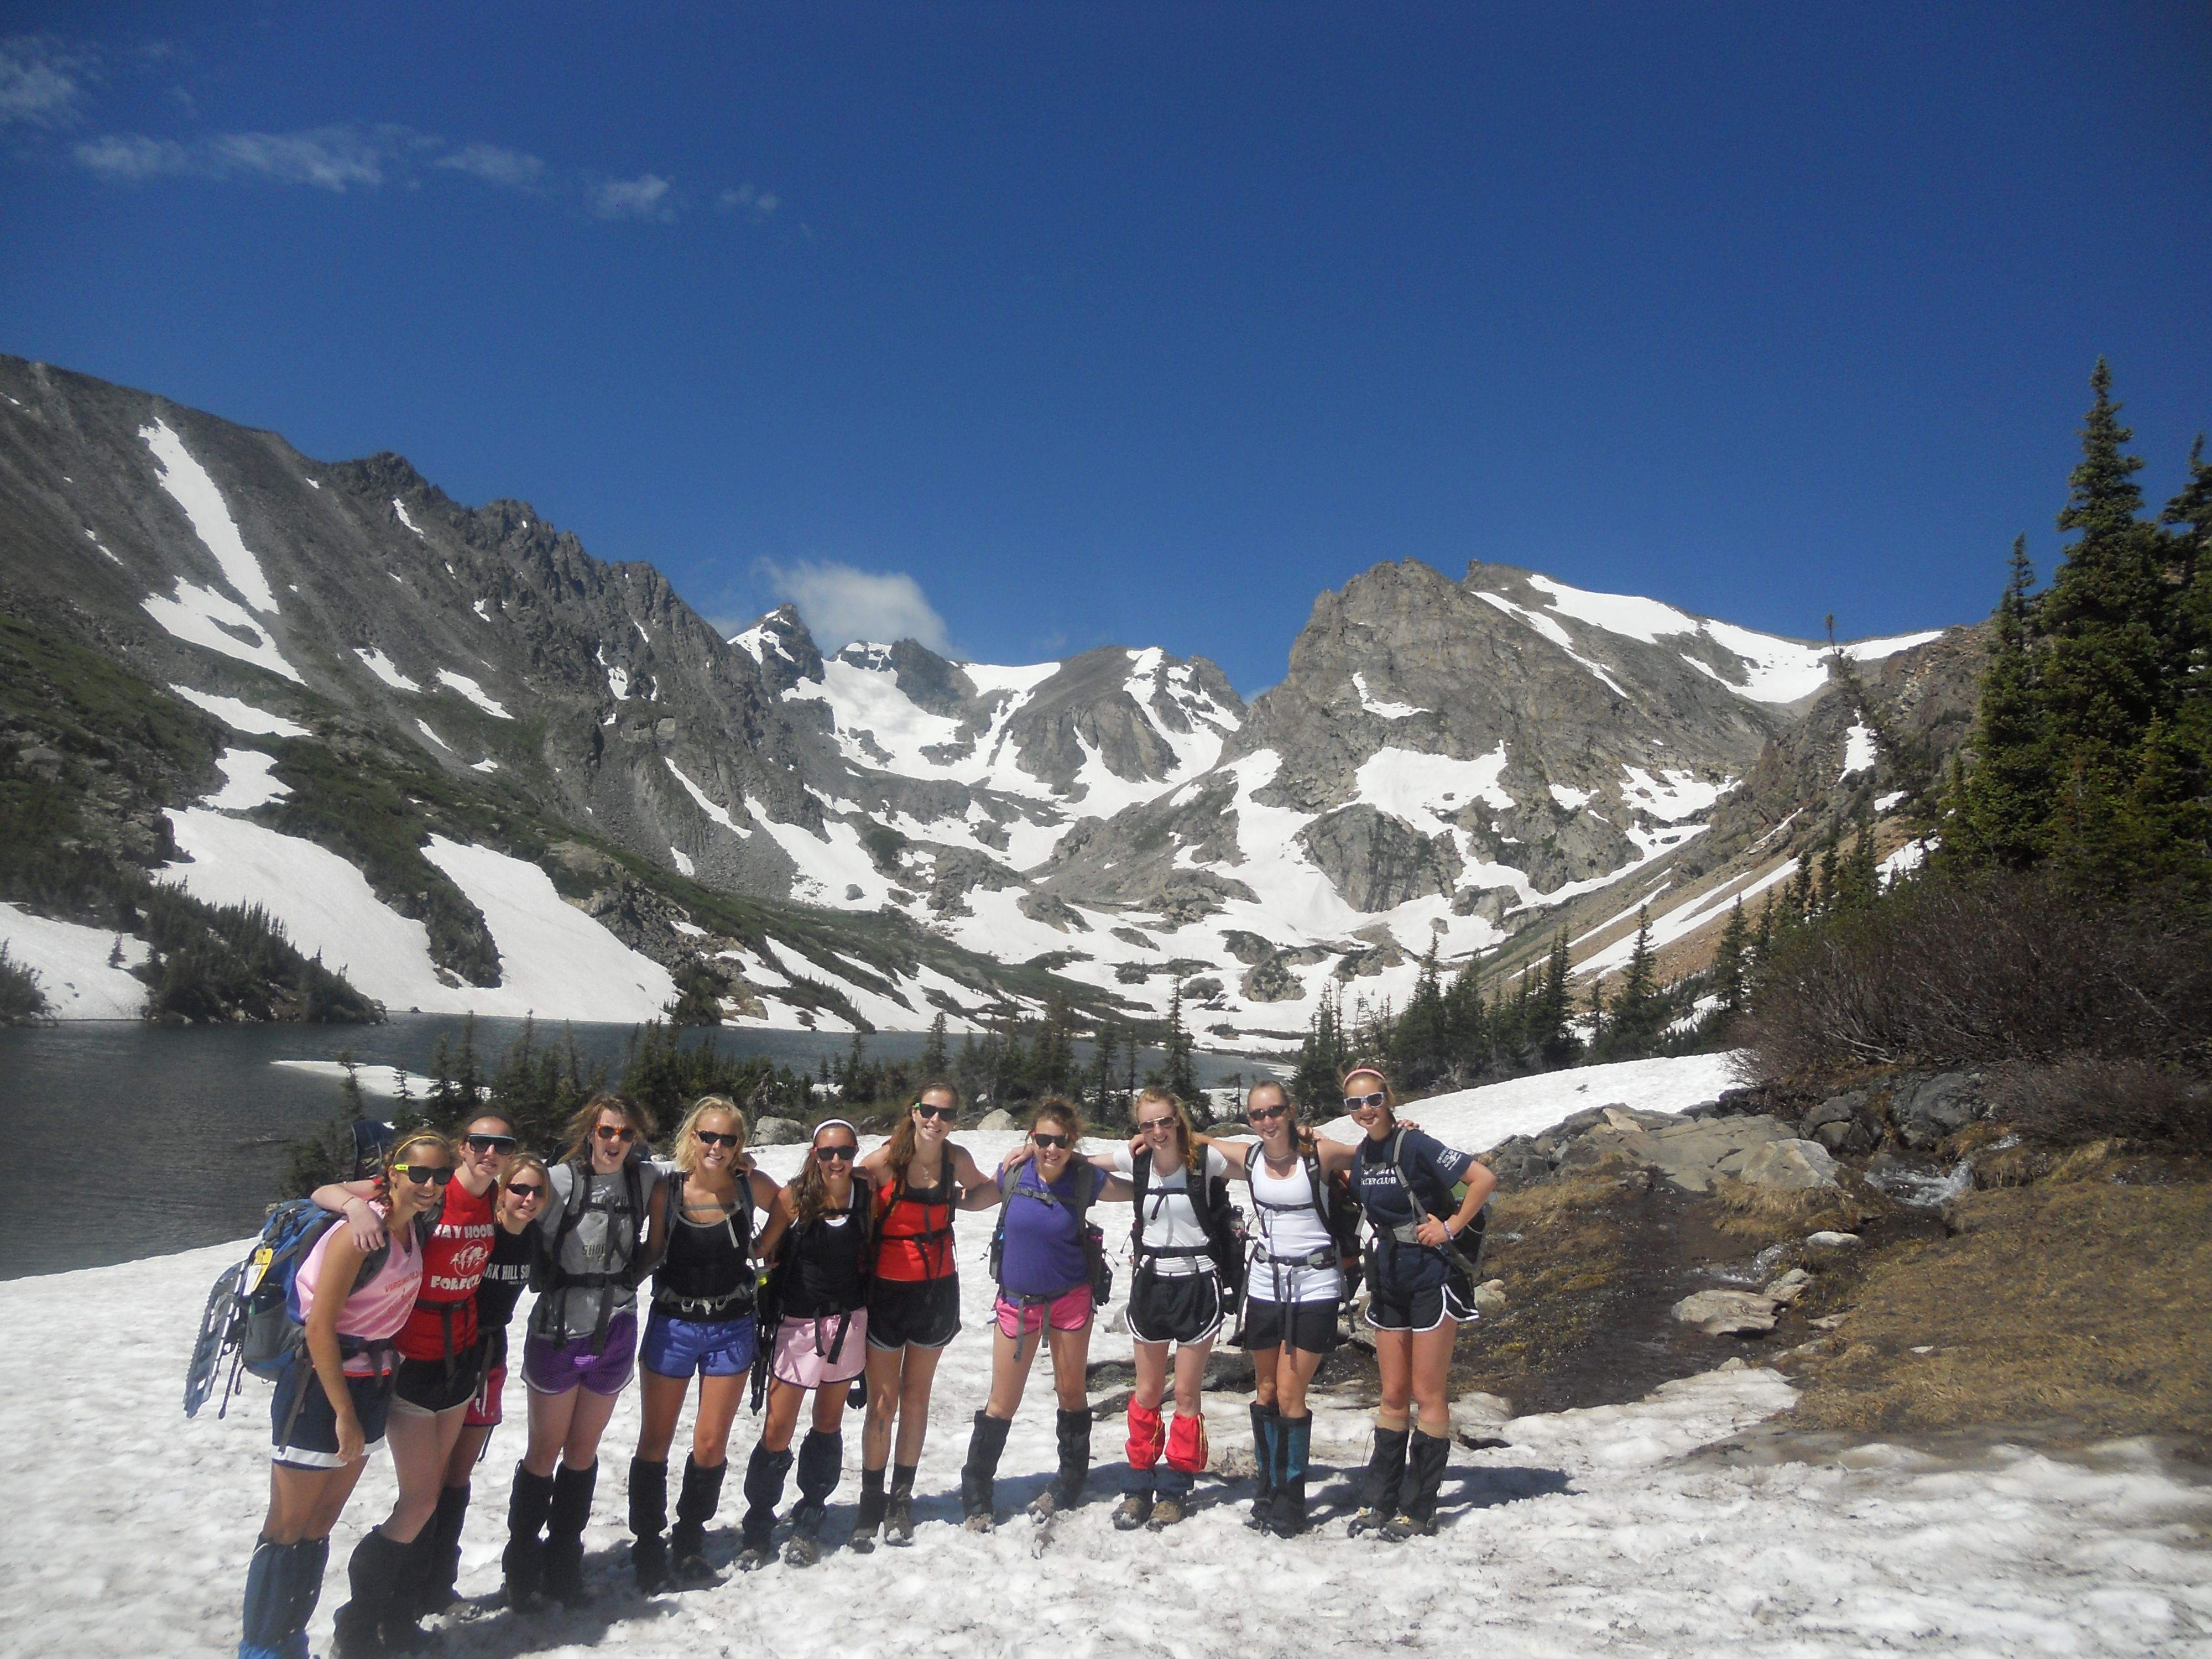 Cheley Colorado Camps | Life at Camp | Pinterest | Colorado and Camps